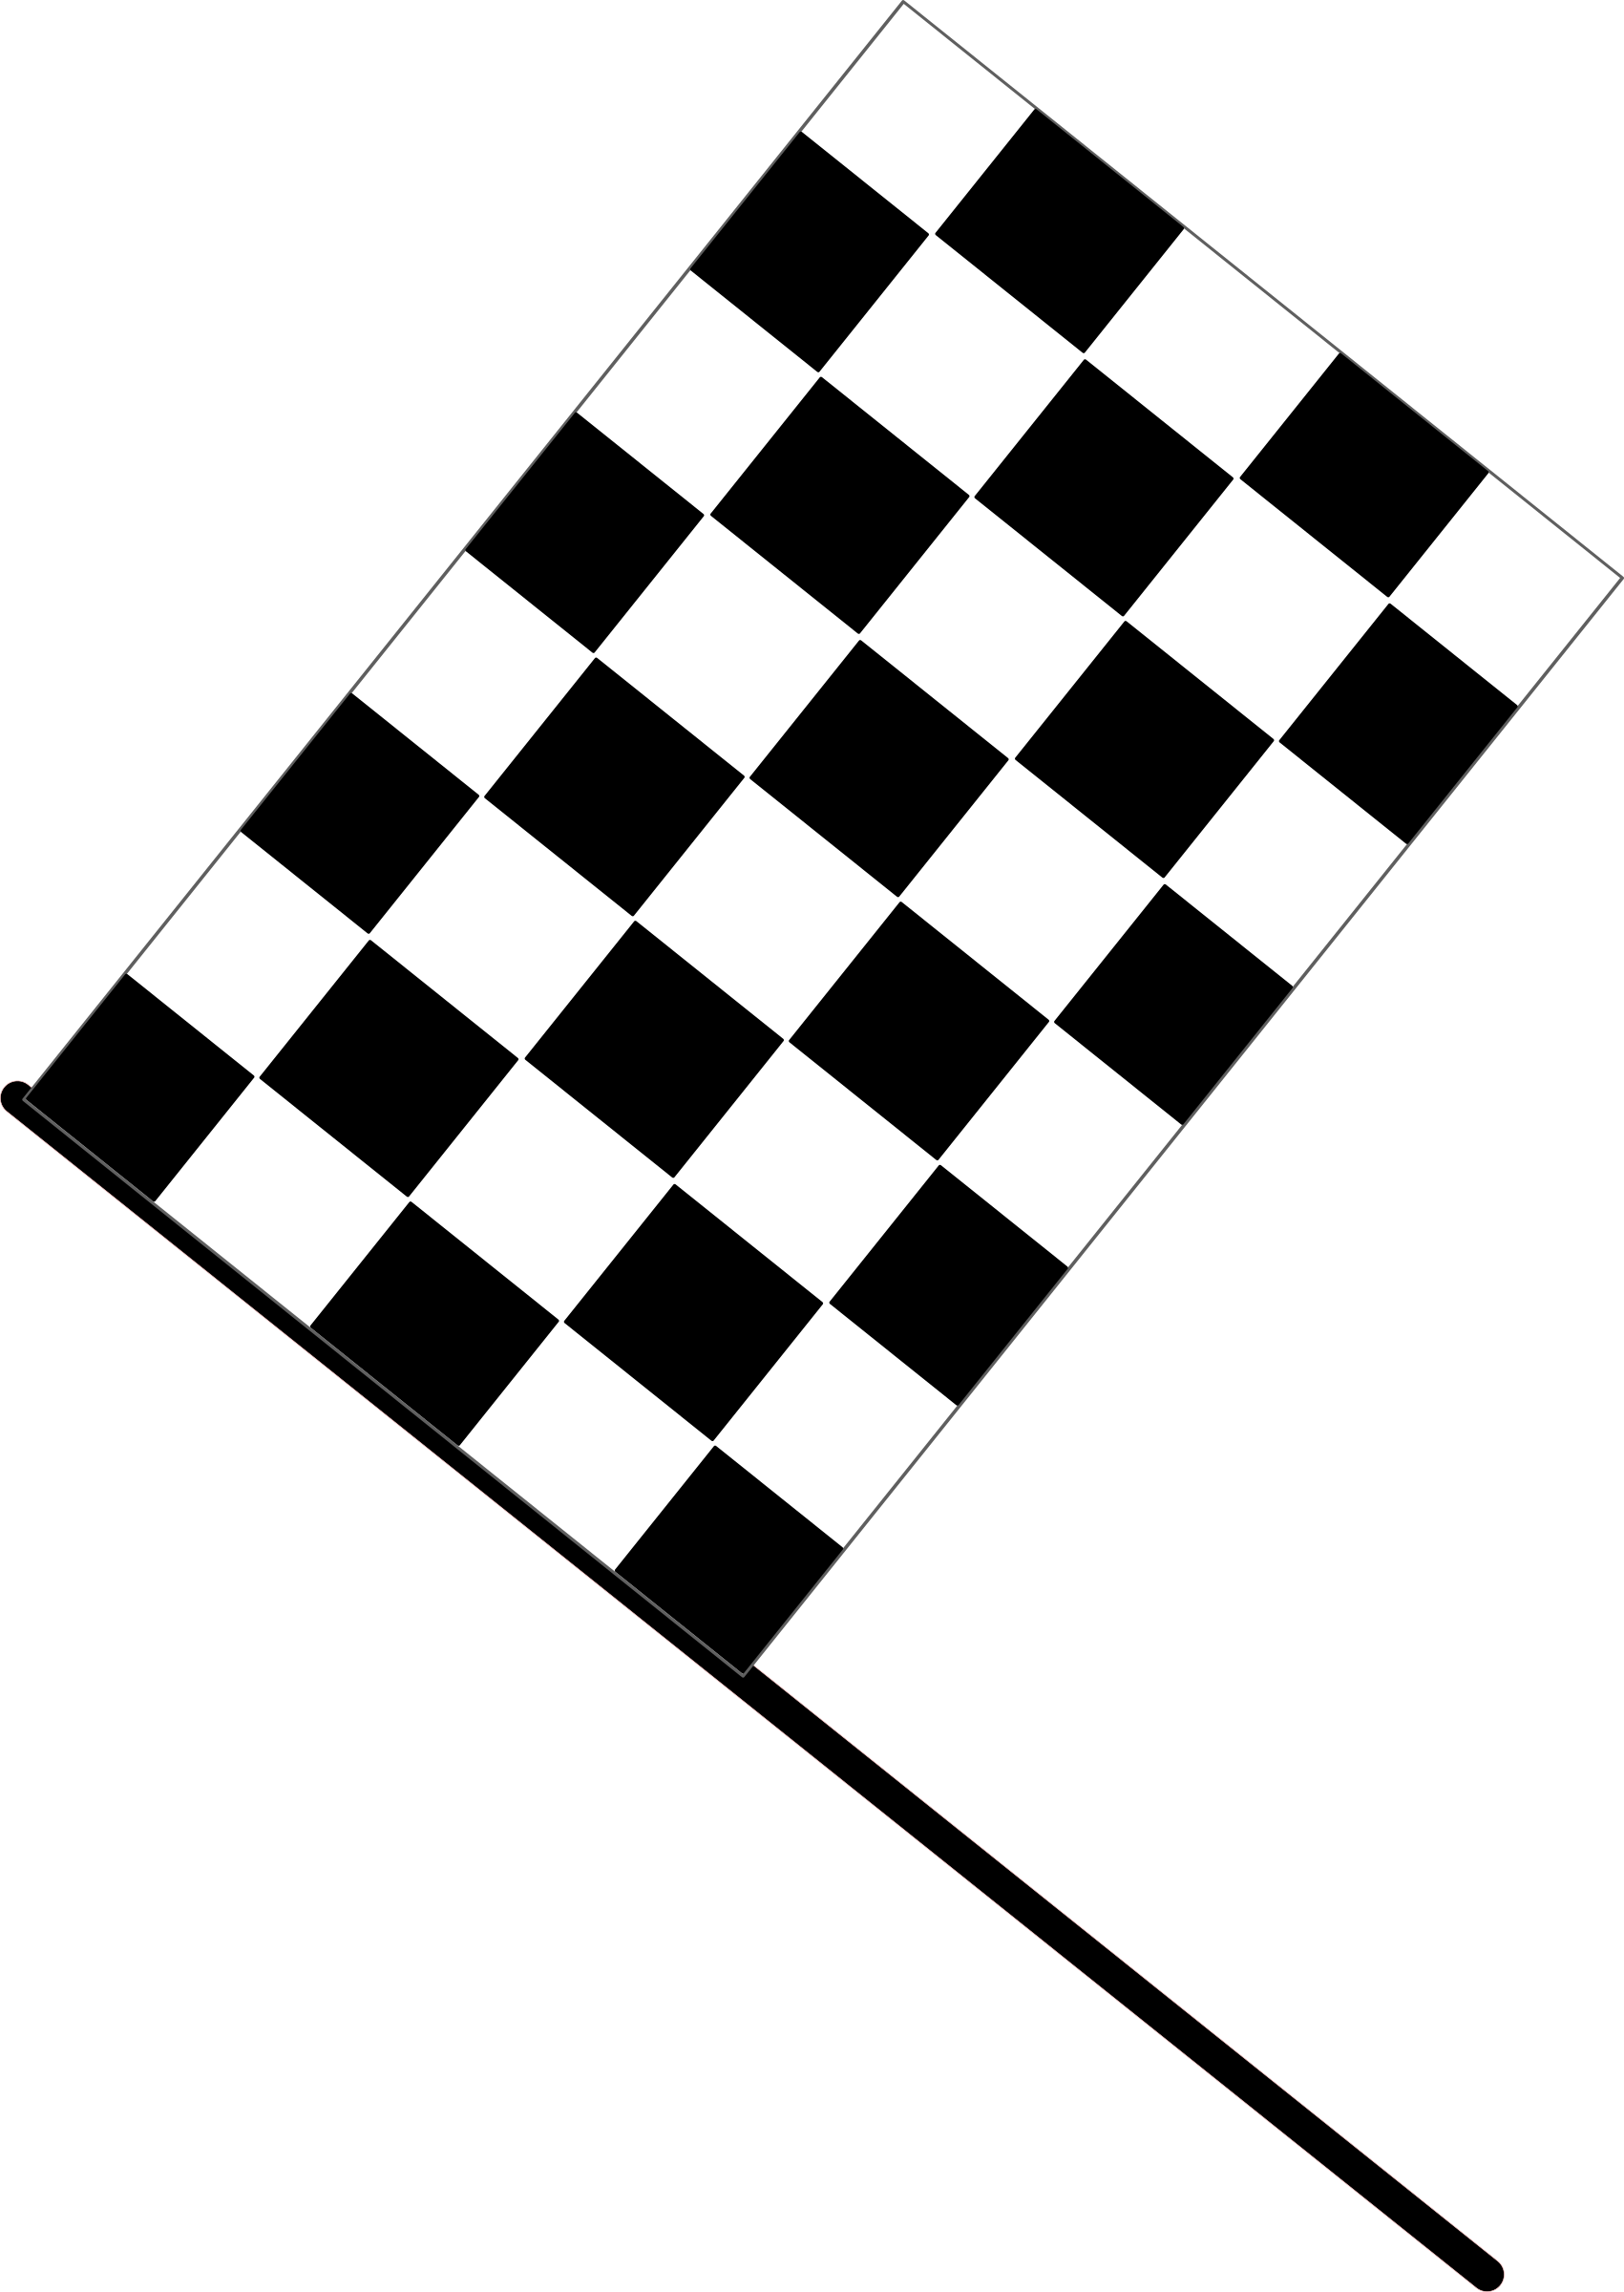 Race clipart checkerboard. Checkered flag icons png